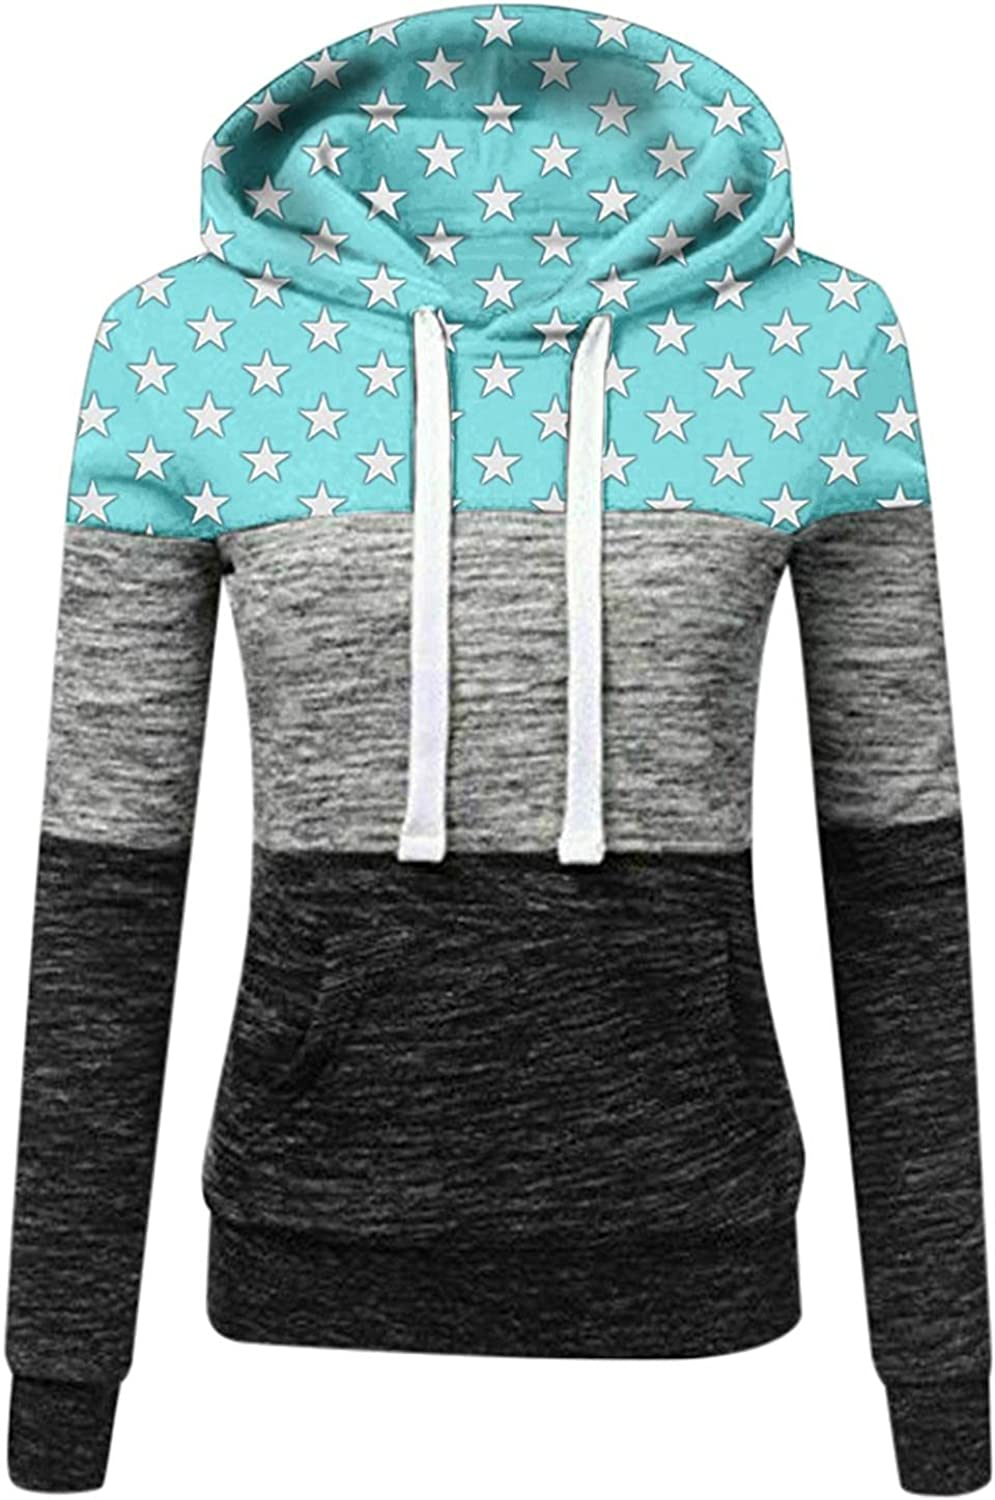 Womens Zip-Up Long Sleeve Striped Lightweight Hooded Sweatshirts Casual Knit Tunic Pullover Outwears with Pockets